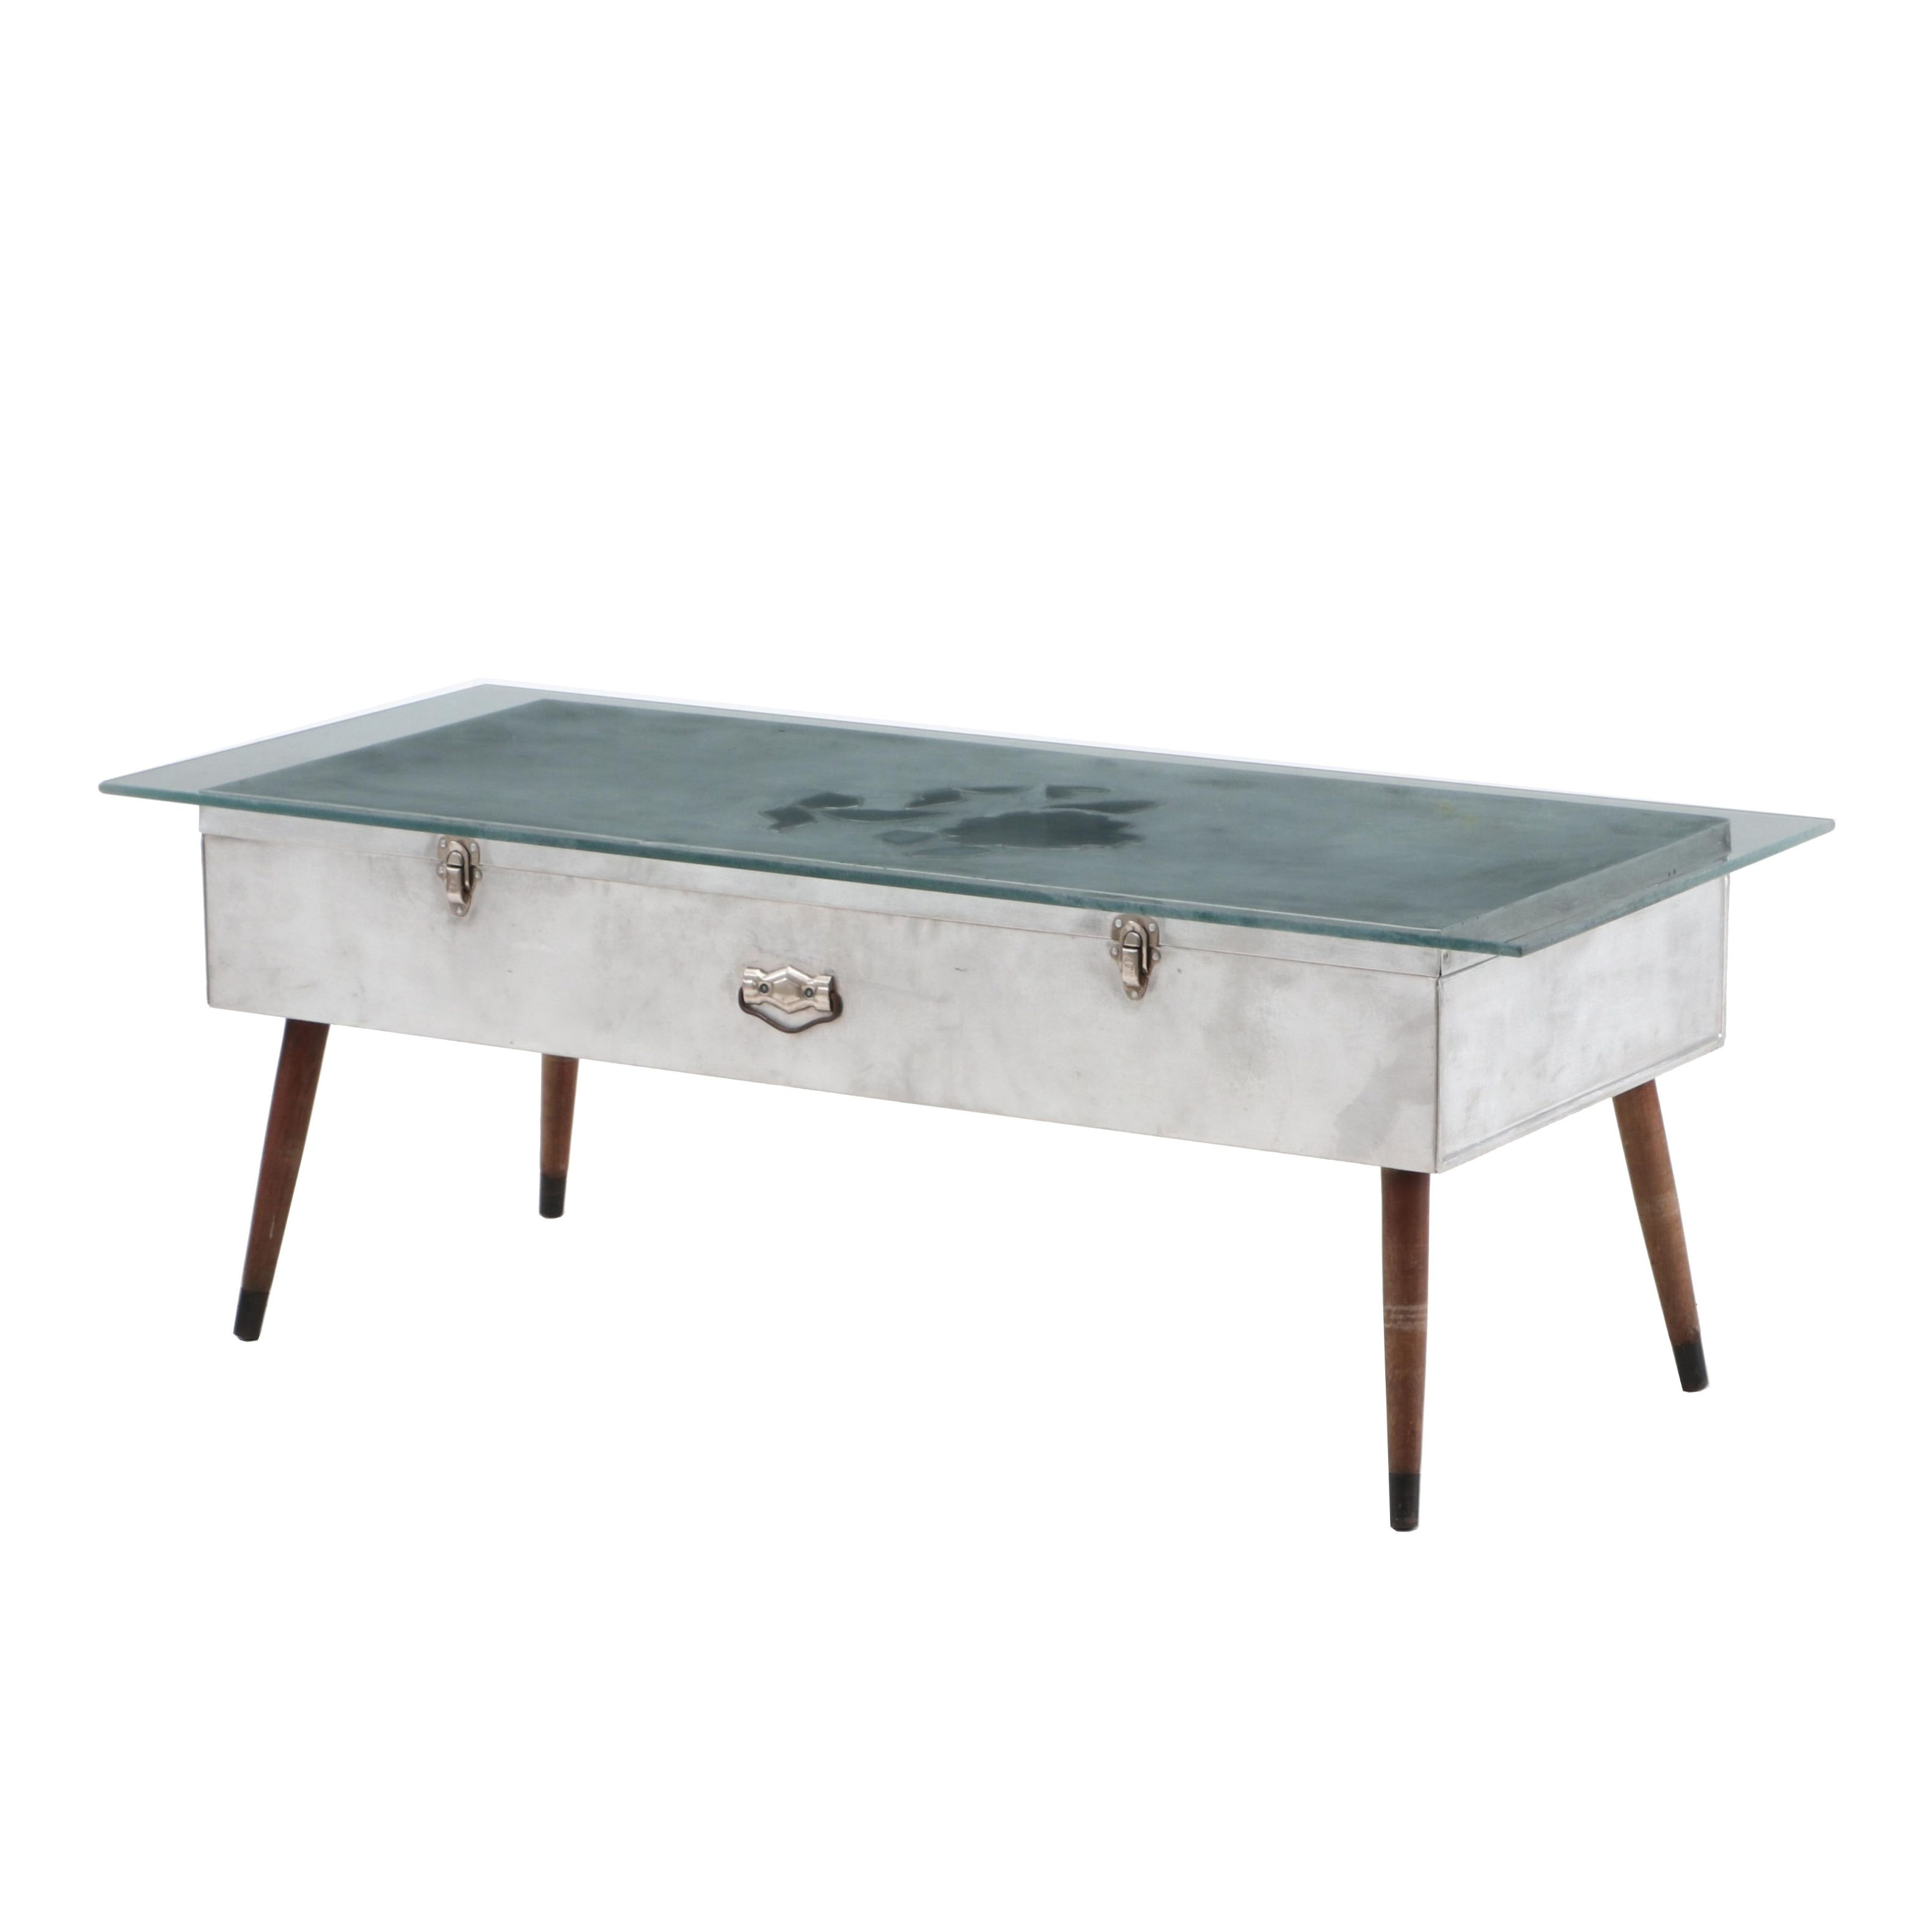 Vintage Repurposed Aluminum Storage Locker Coffee Table